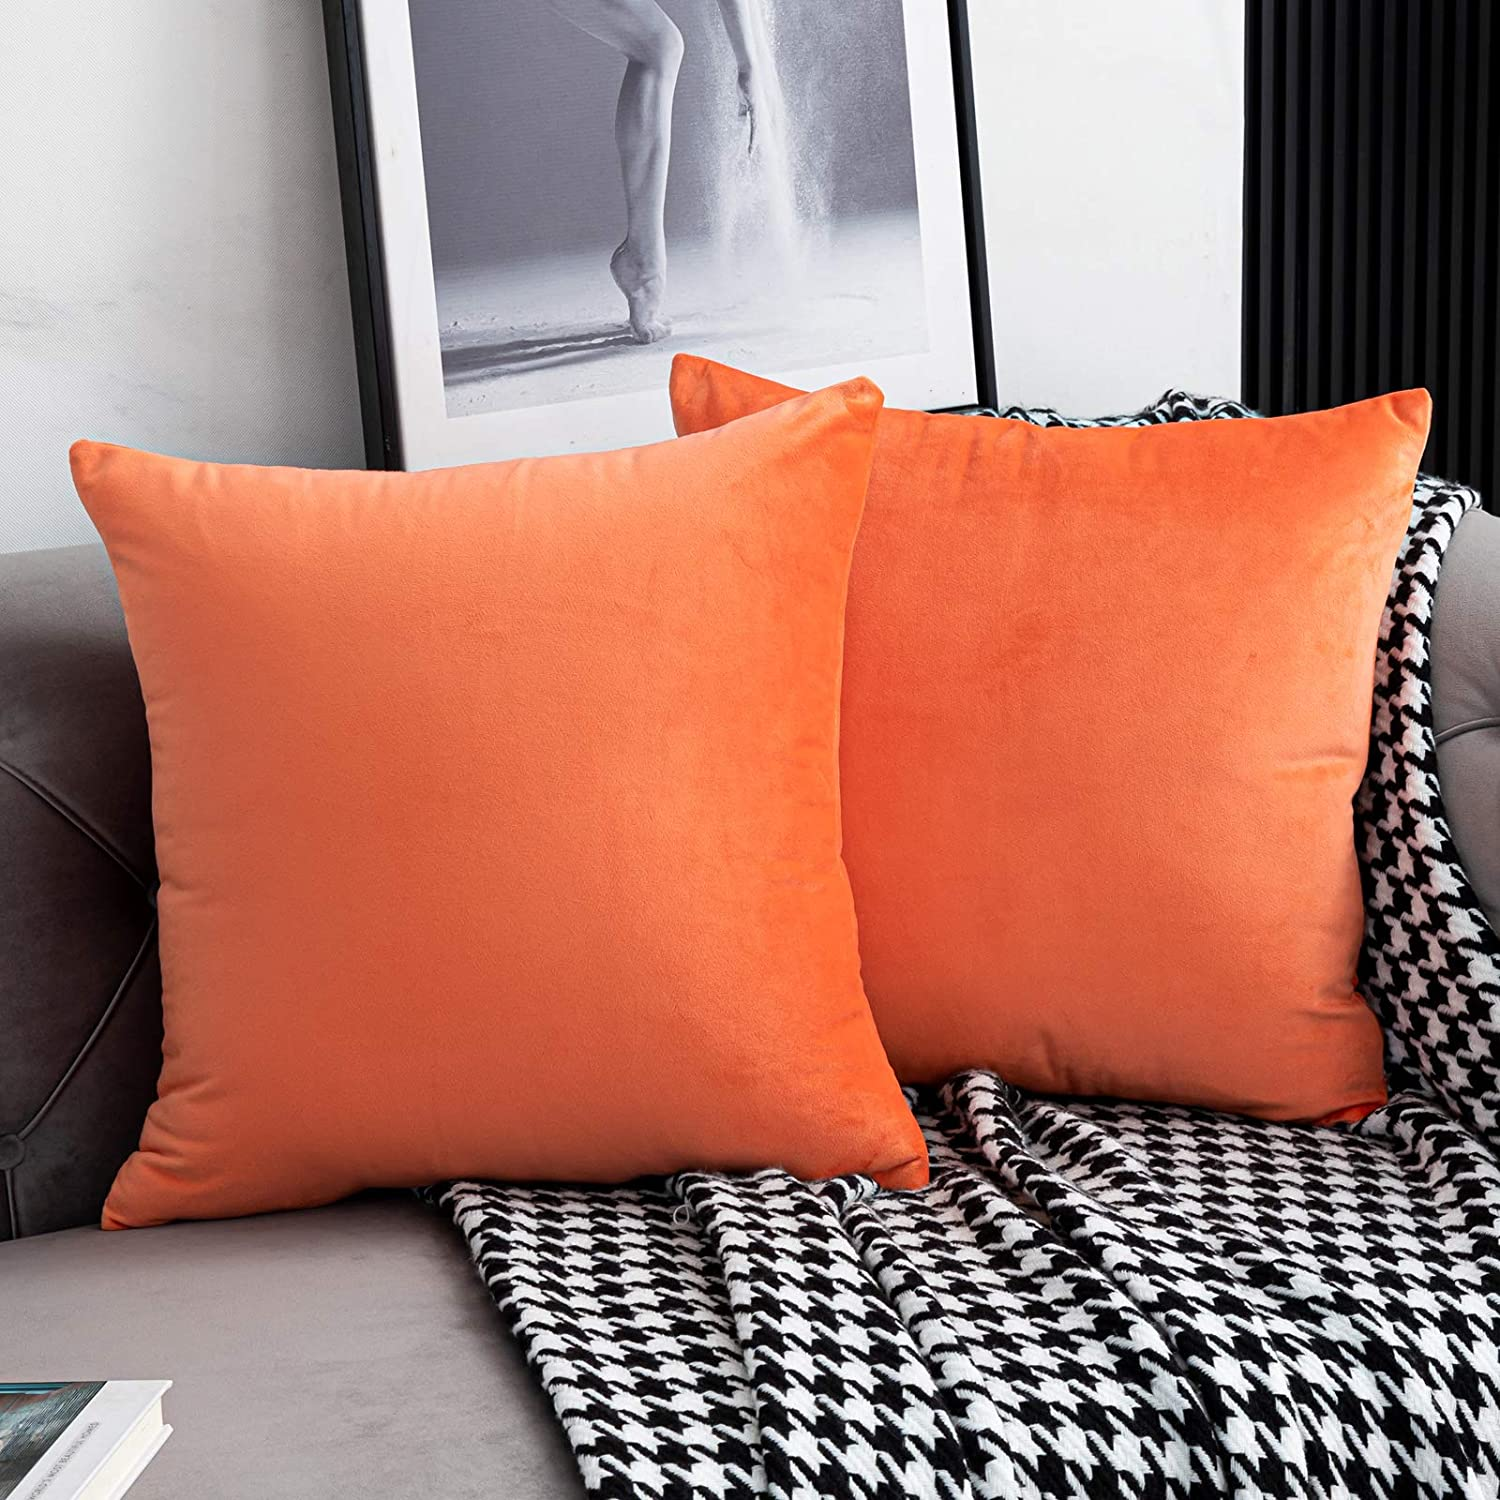 WLNUI Set of 2 Soft Velvet Coral Pillow Covers 18x18 Inch Square Decorative Throw Pillow Covers Cushion Case for Sofa Couch Home Farmhouse Decor